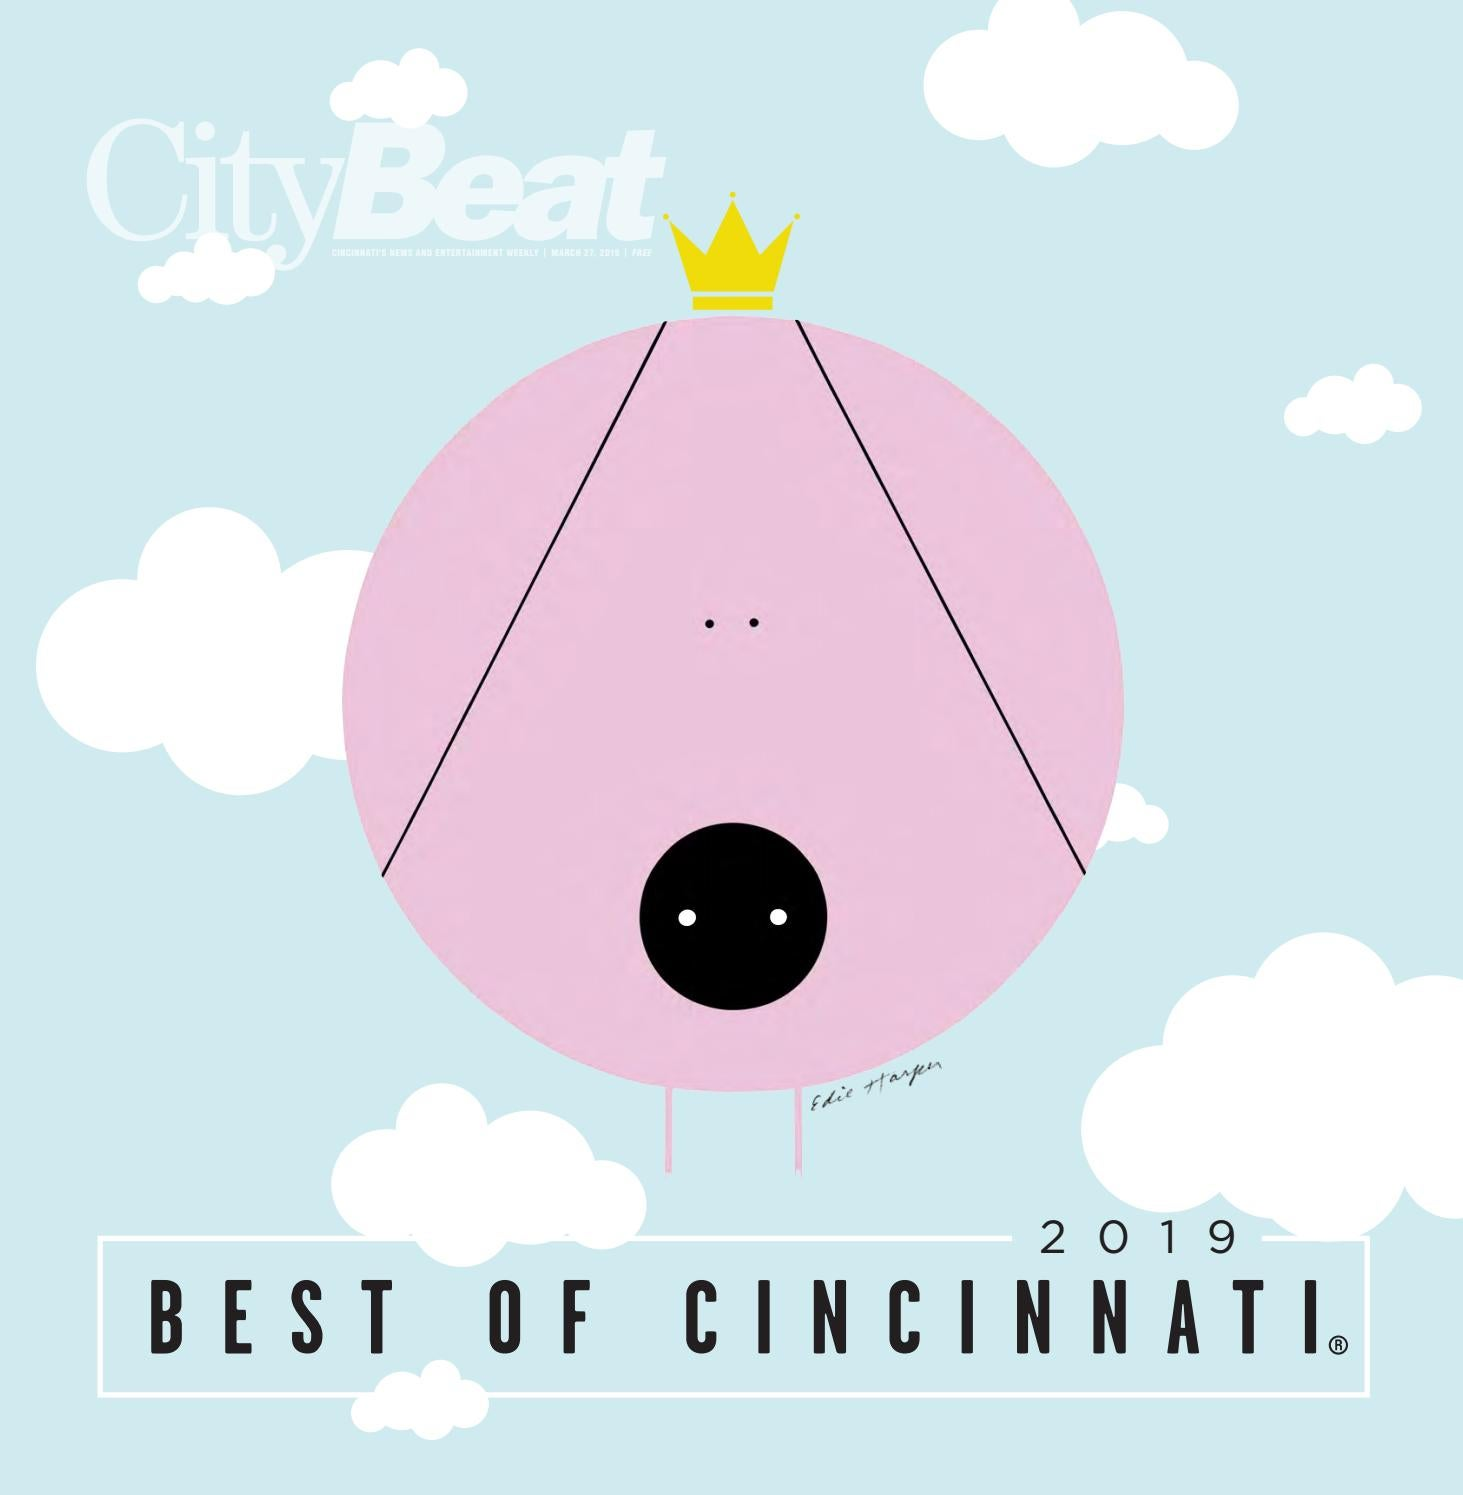 19aafaf4b Best Of Cincinnati 2019 by Euclid Media Group - issuu